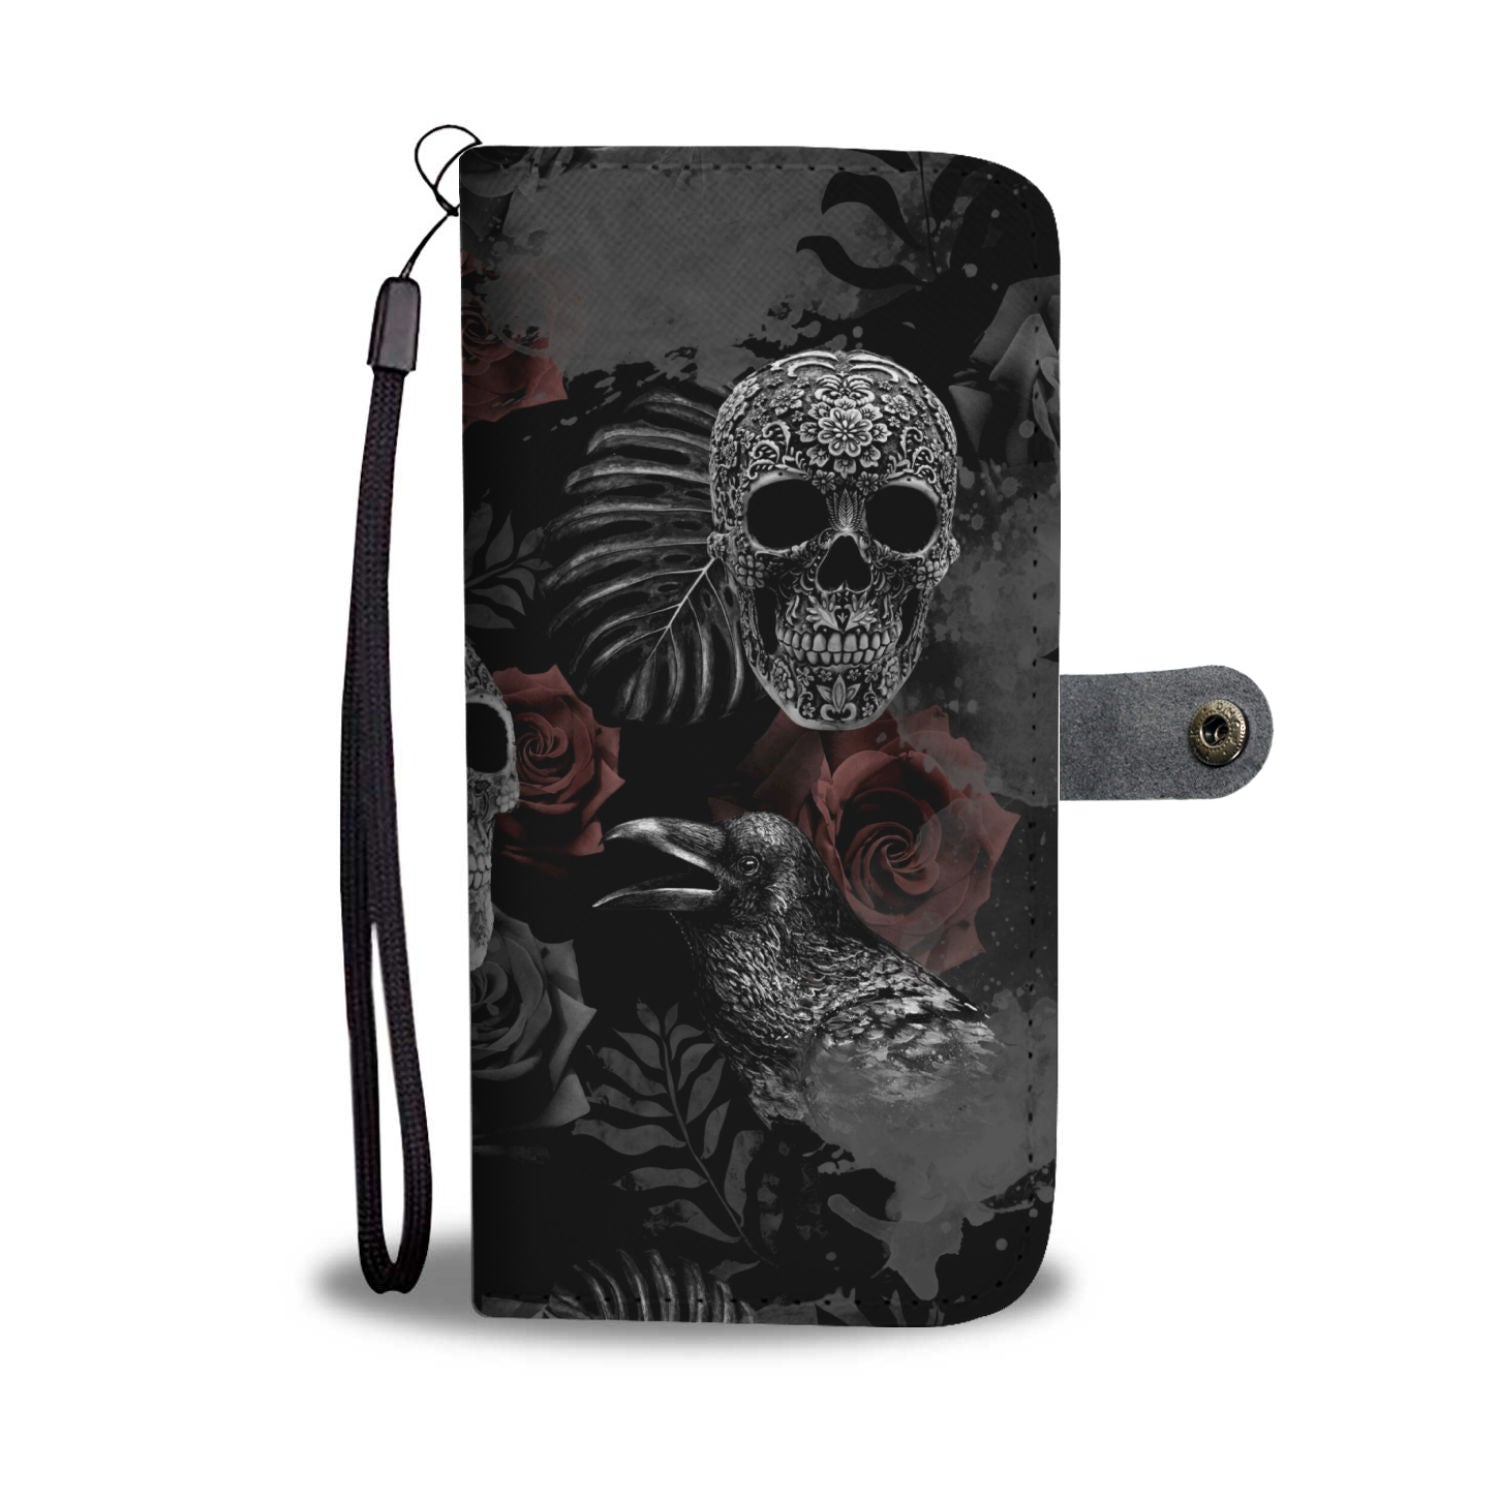 Skulls and Roses Phone Wallet Case